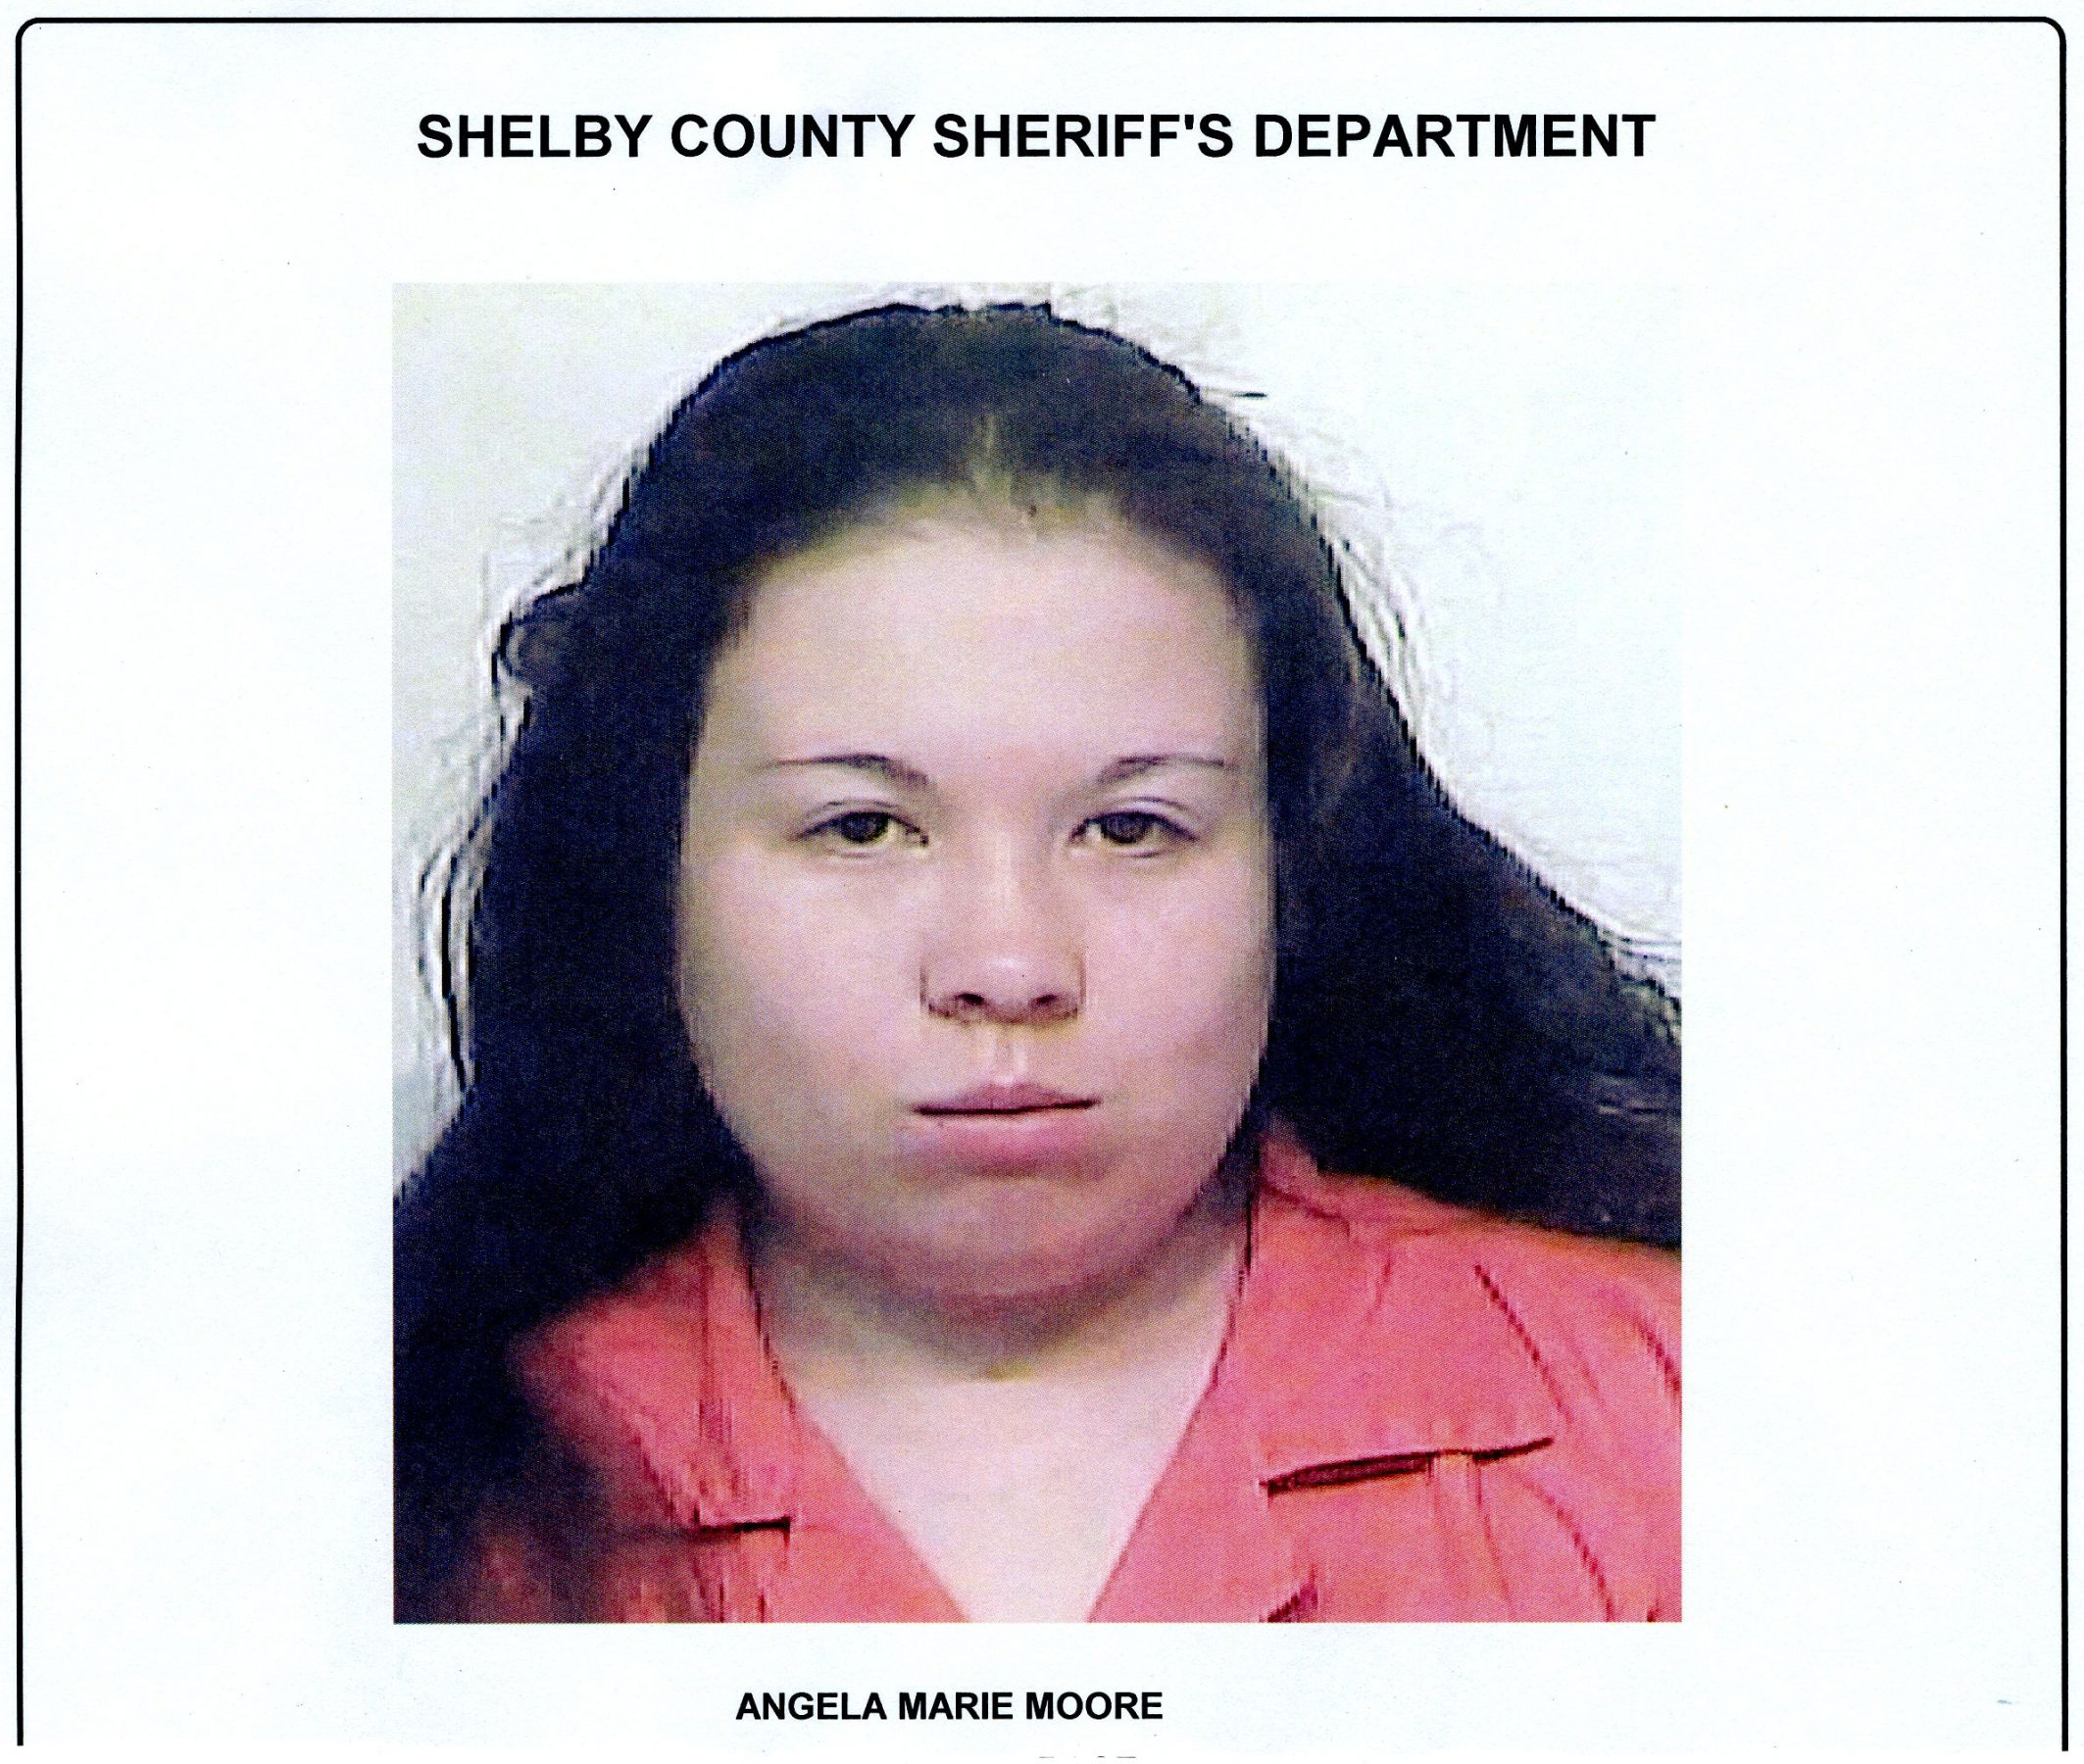 Shelby County Arrests Local News Center Broadcasting Live Local Reaching Out